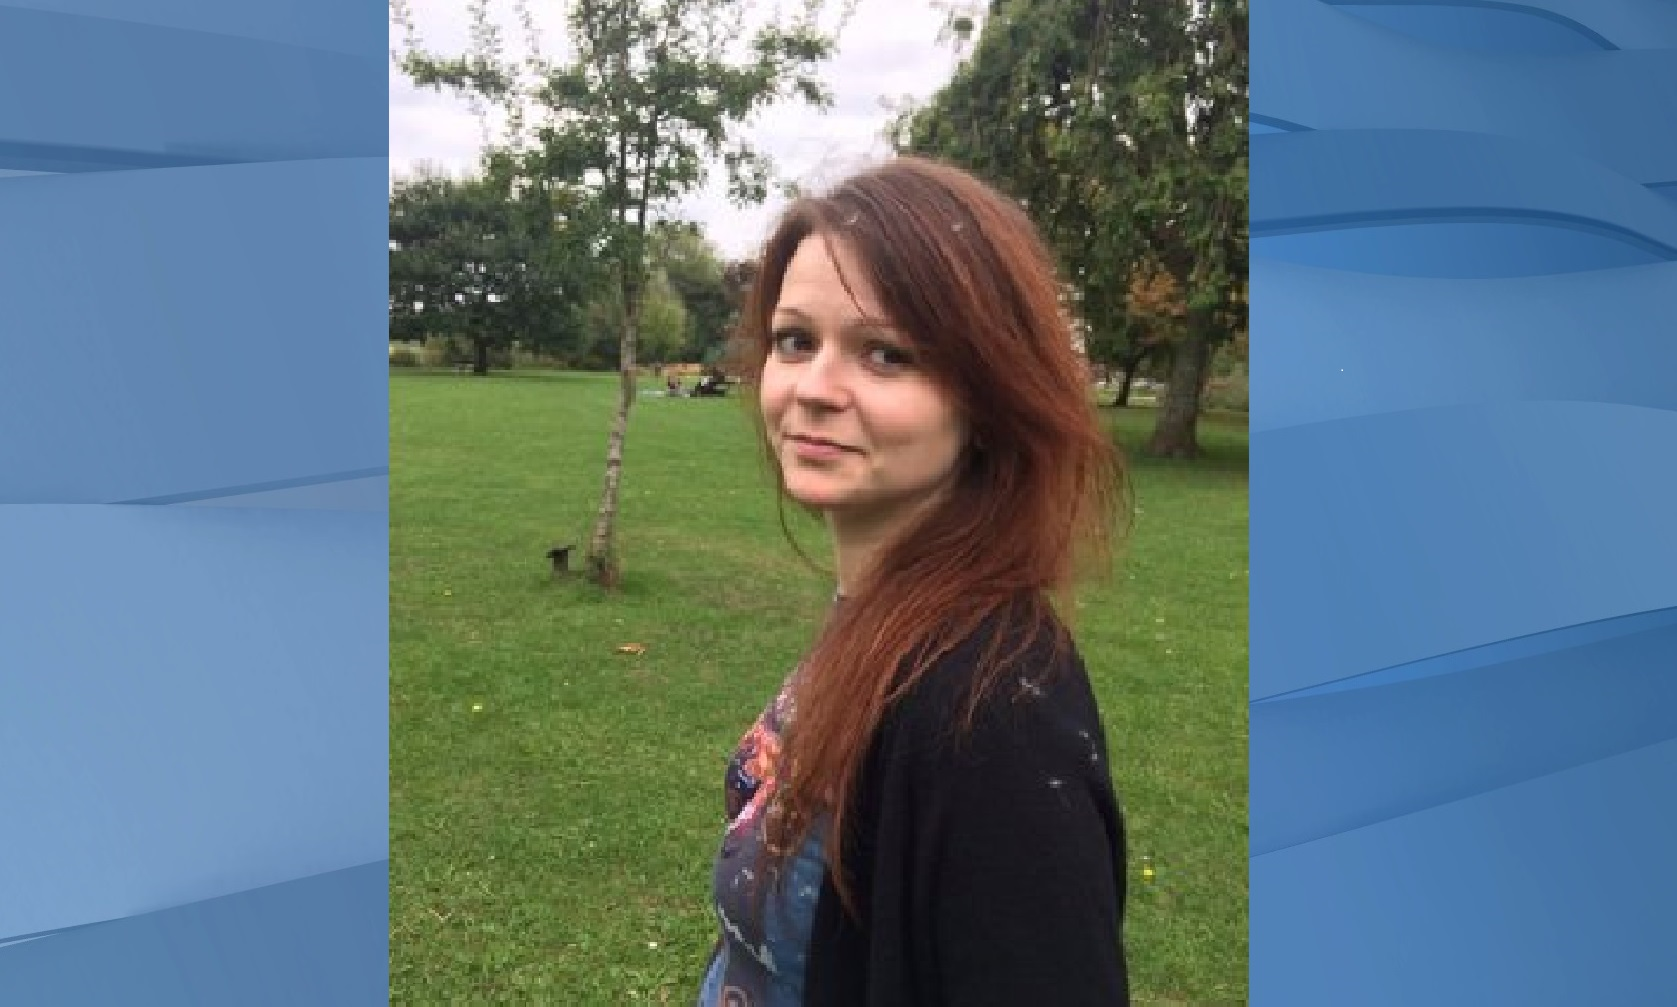 Ex-spy's daughter released from British hospital